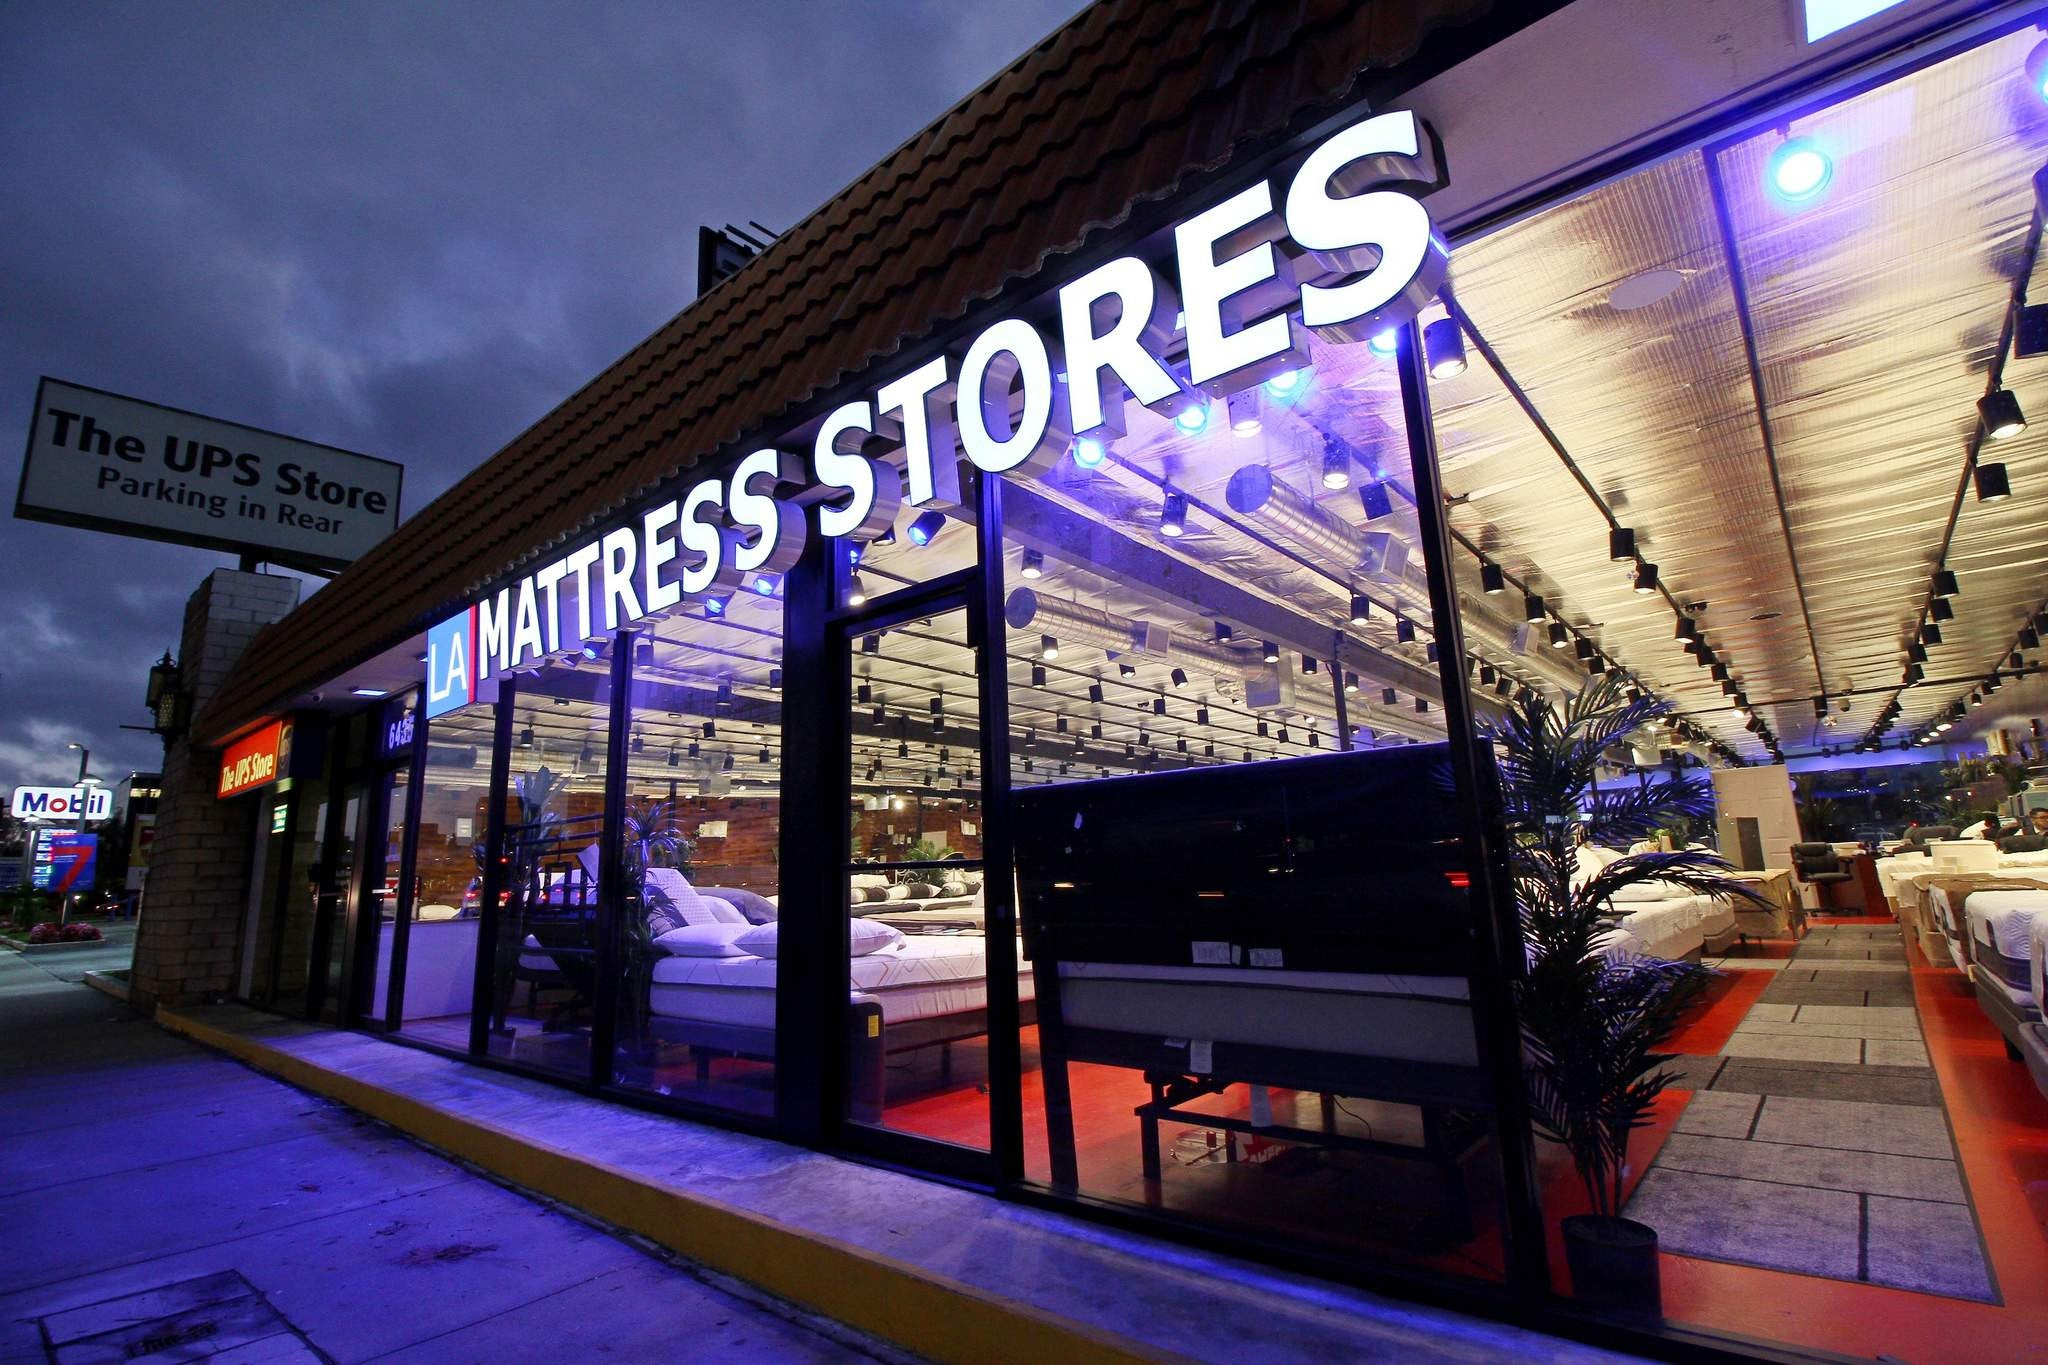 Woodland Hills Mattress Stores Topanga Canyon at Night